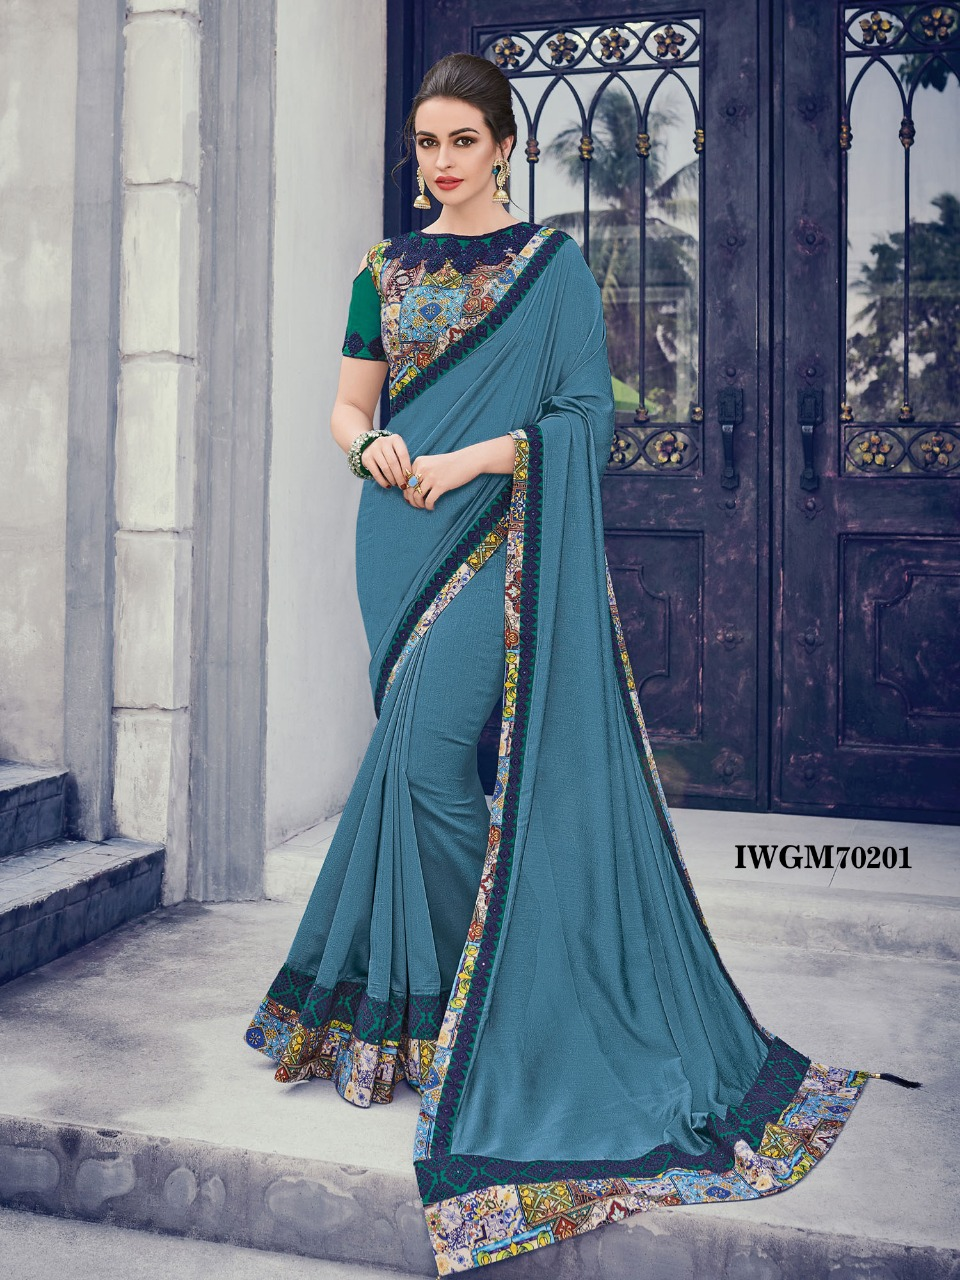 4b9726d4b9 GULMOHAR BY FASHID WHOLESALE 70200 TO 70209 SERIES INDIAN TRADITIONAL WEAR  COLLECTION BEAUTIFUL STYLISH FANCY COLORFUL PARTY WEAR & OCCASIONAL WEAR  TWO TONE ...